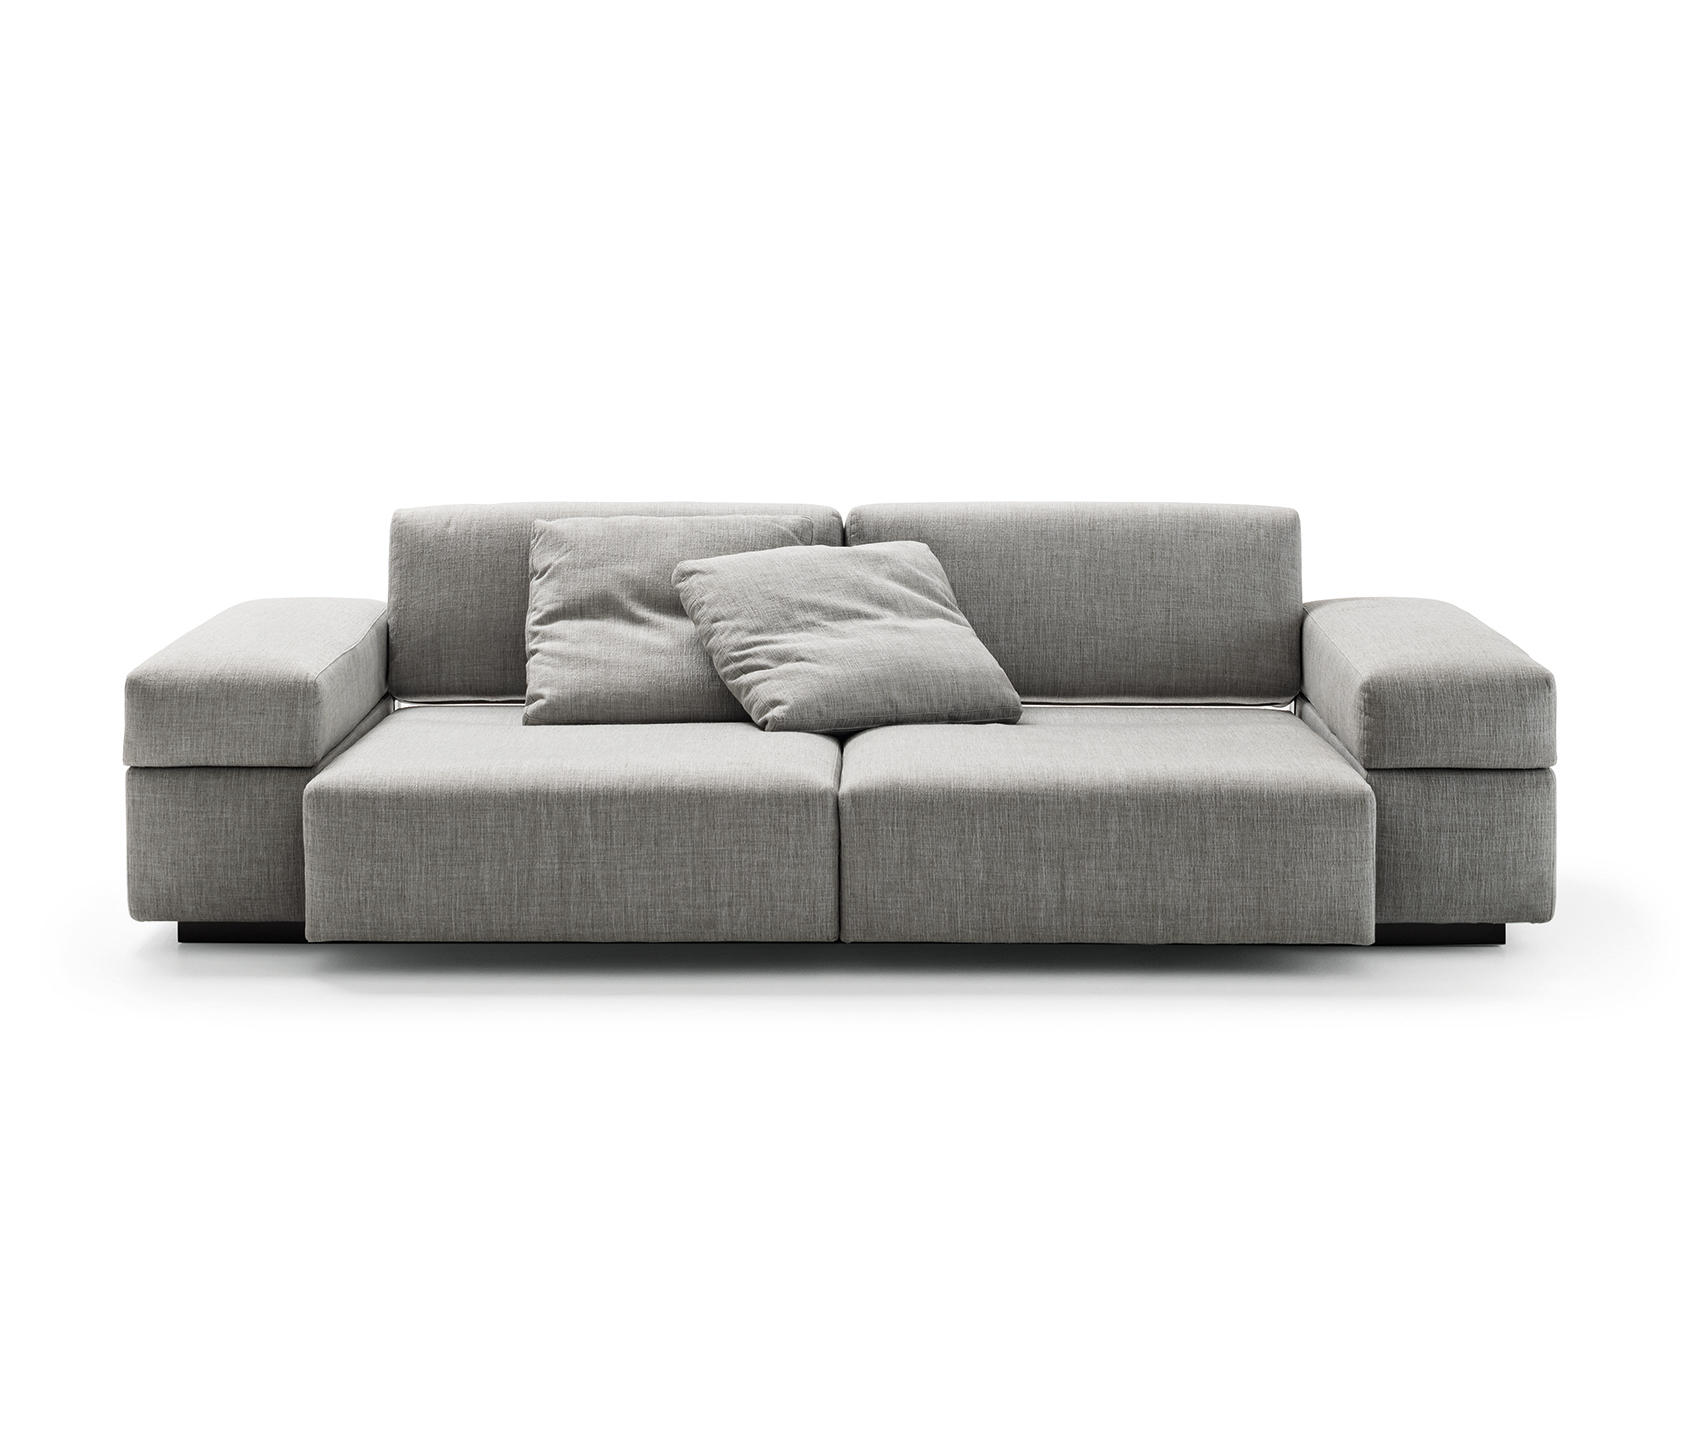 BRICK LANE Sofas from LEMA